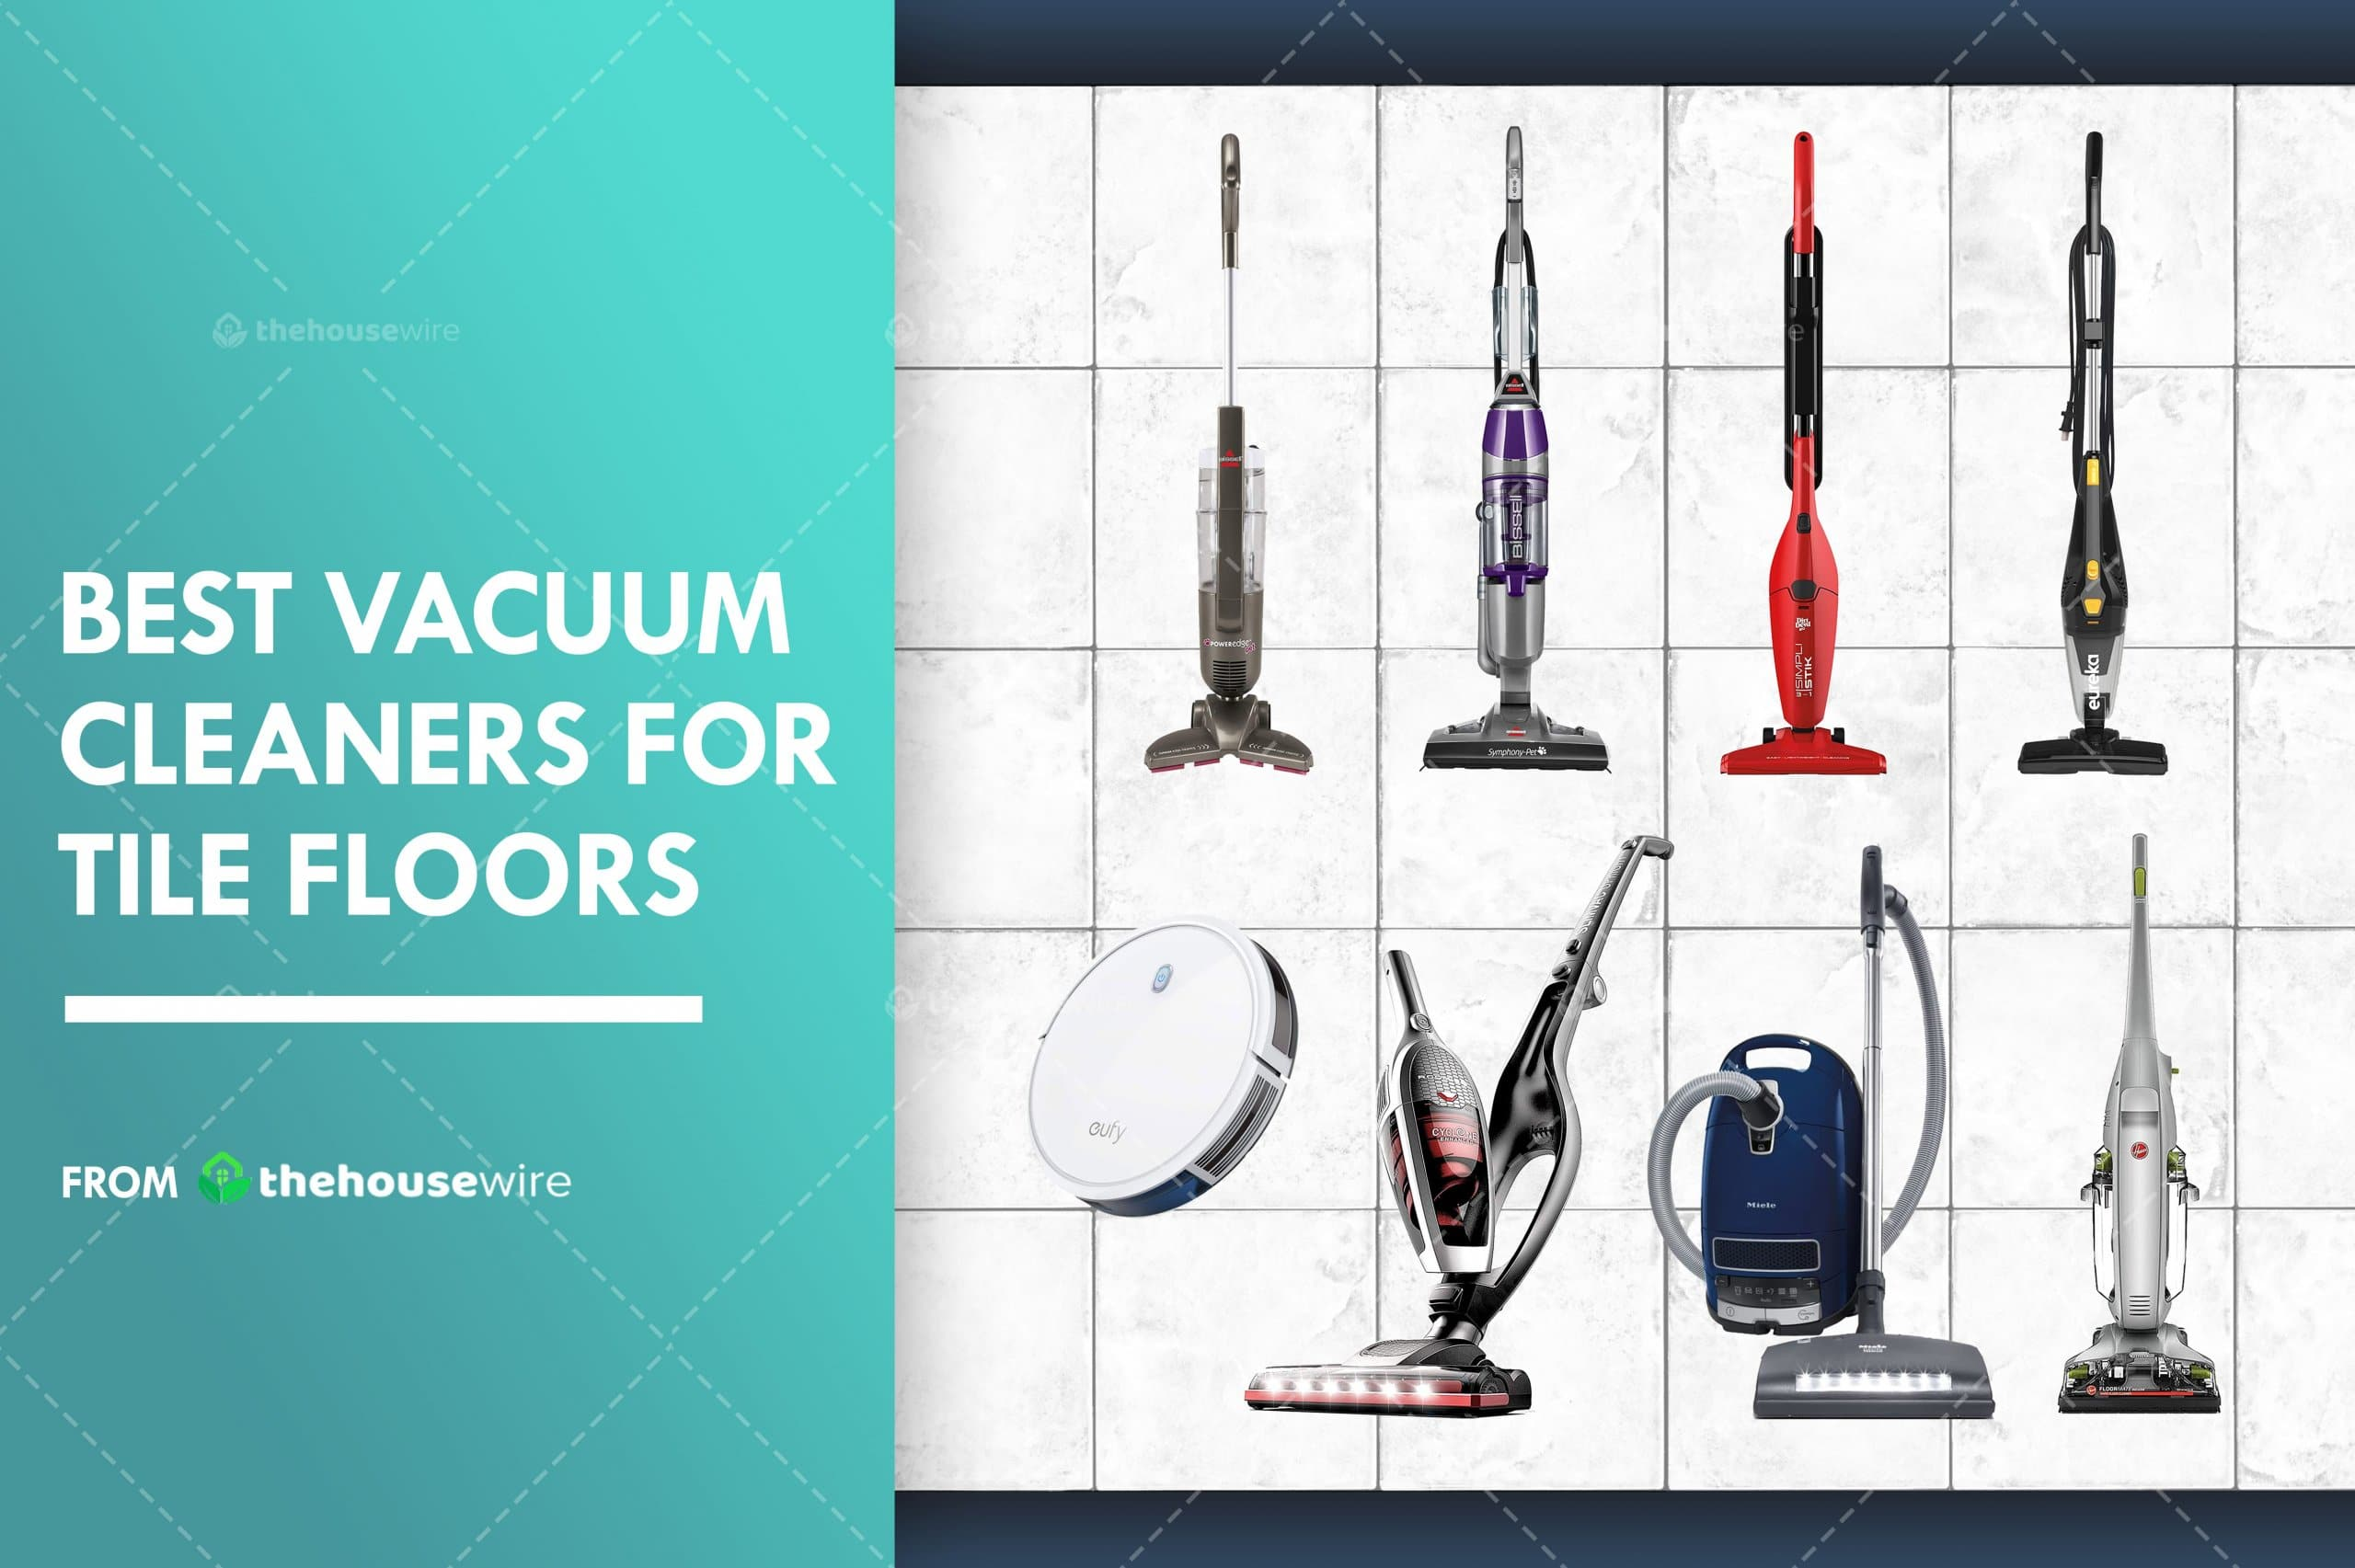 The 8 Best Vacuum Cleaners For Tile Floors Of 2020